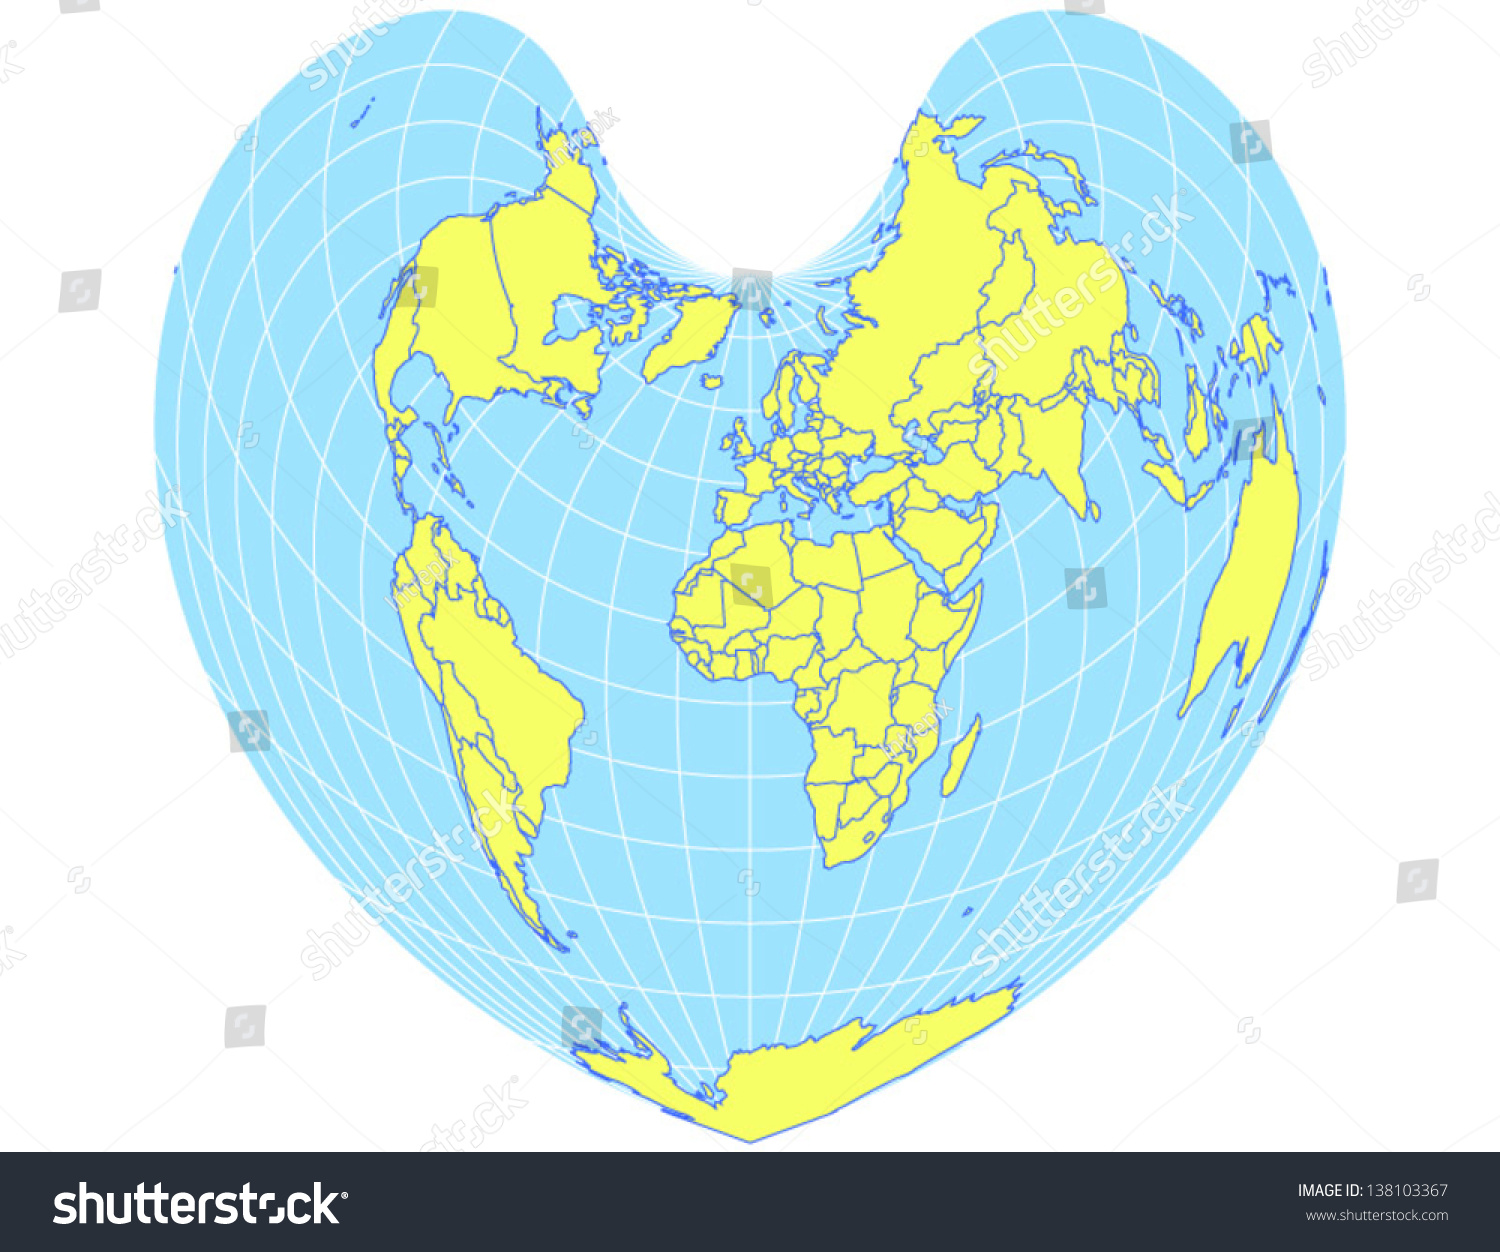 equal area projection map